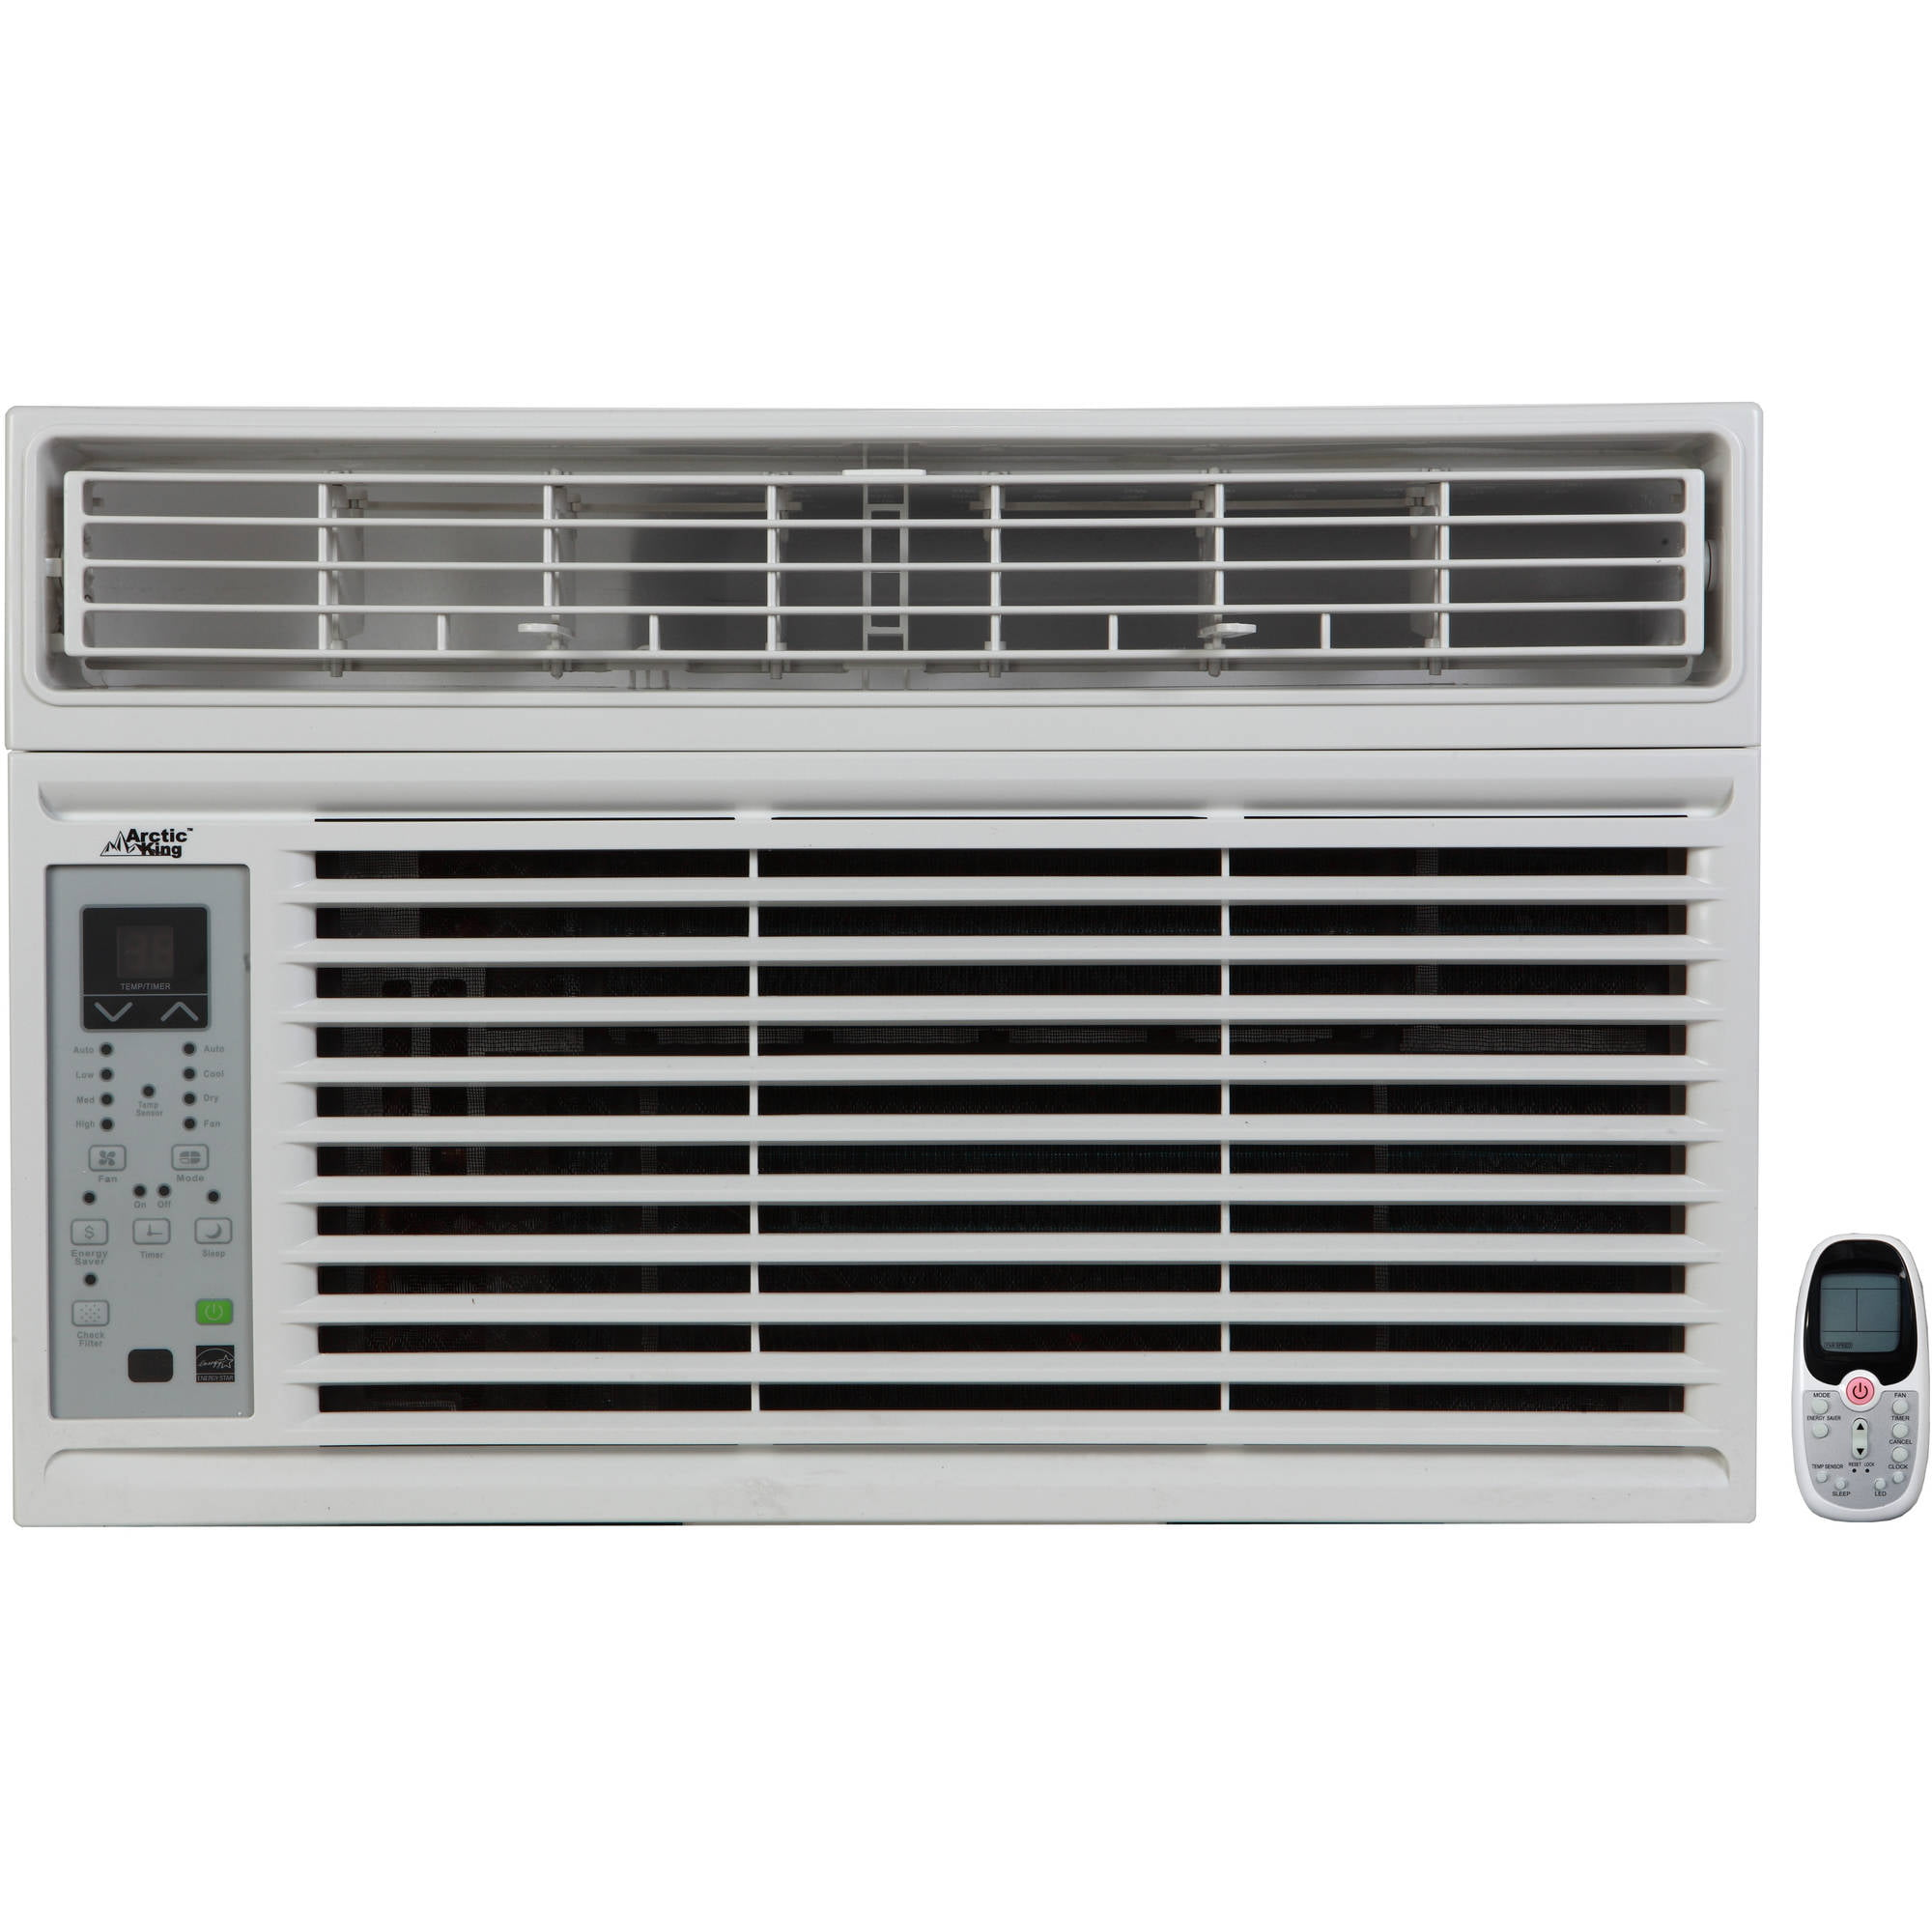 Arctic King WWK06CR71N 6,000 Btu Remote Control Window Air Conditioner,  White - Walmart.com